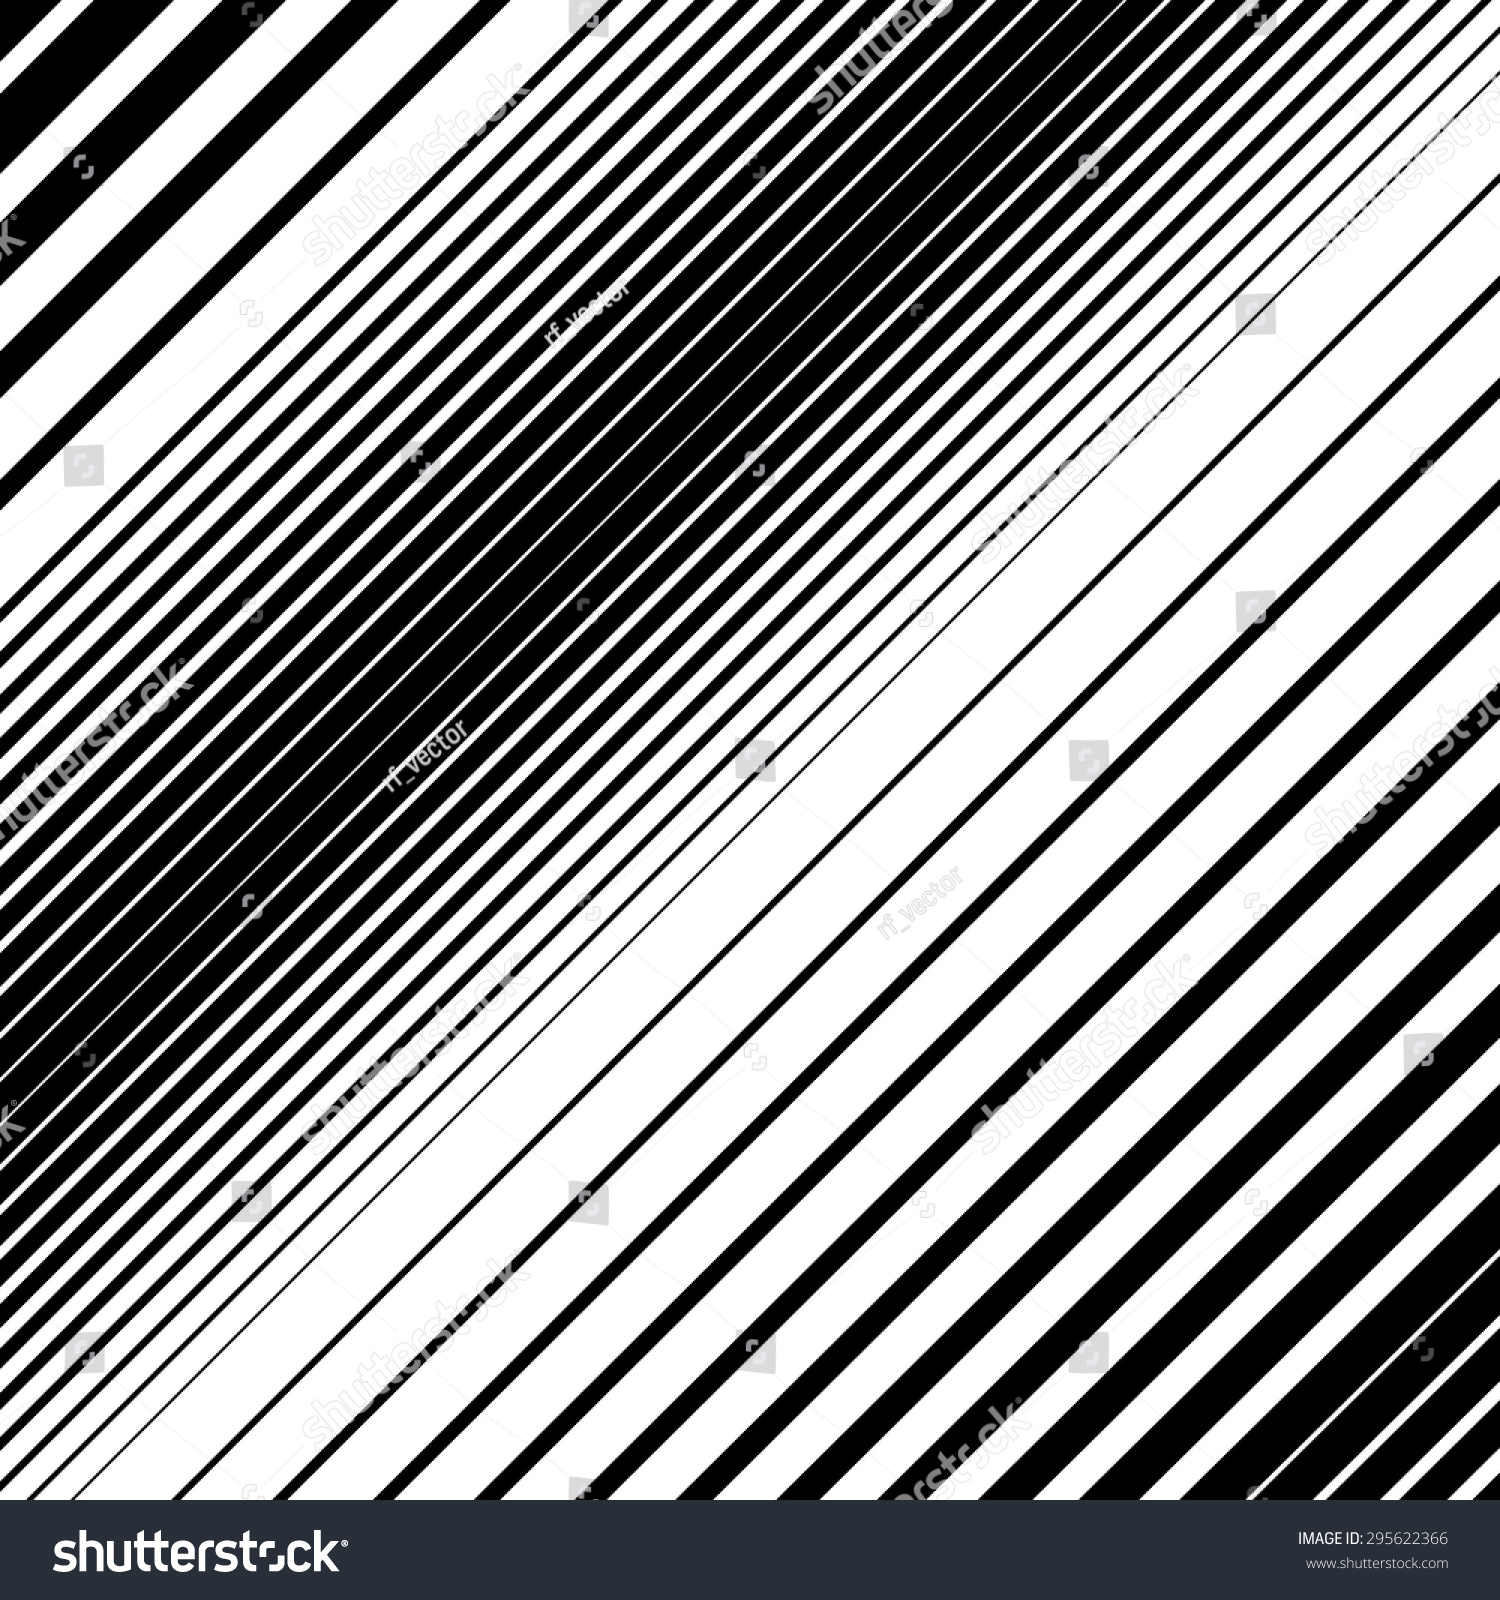 Line Texture Background : Parallel diagonal slanting lines texture pattern stock